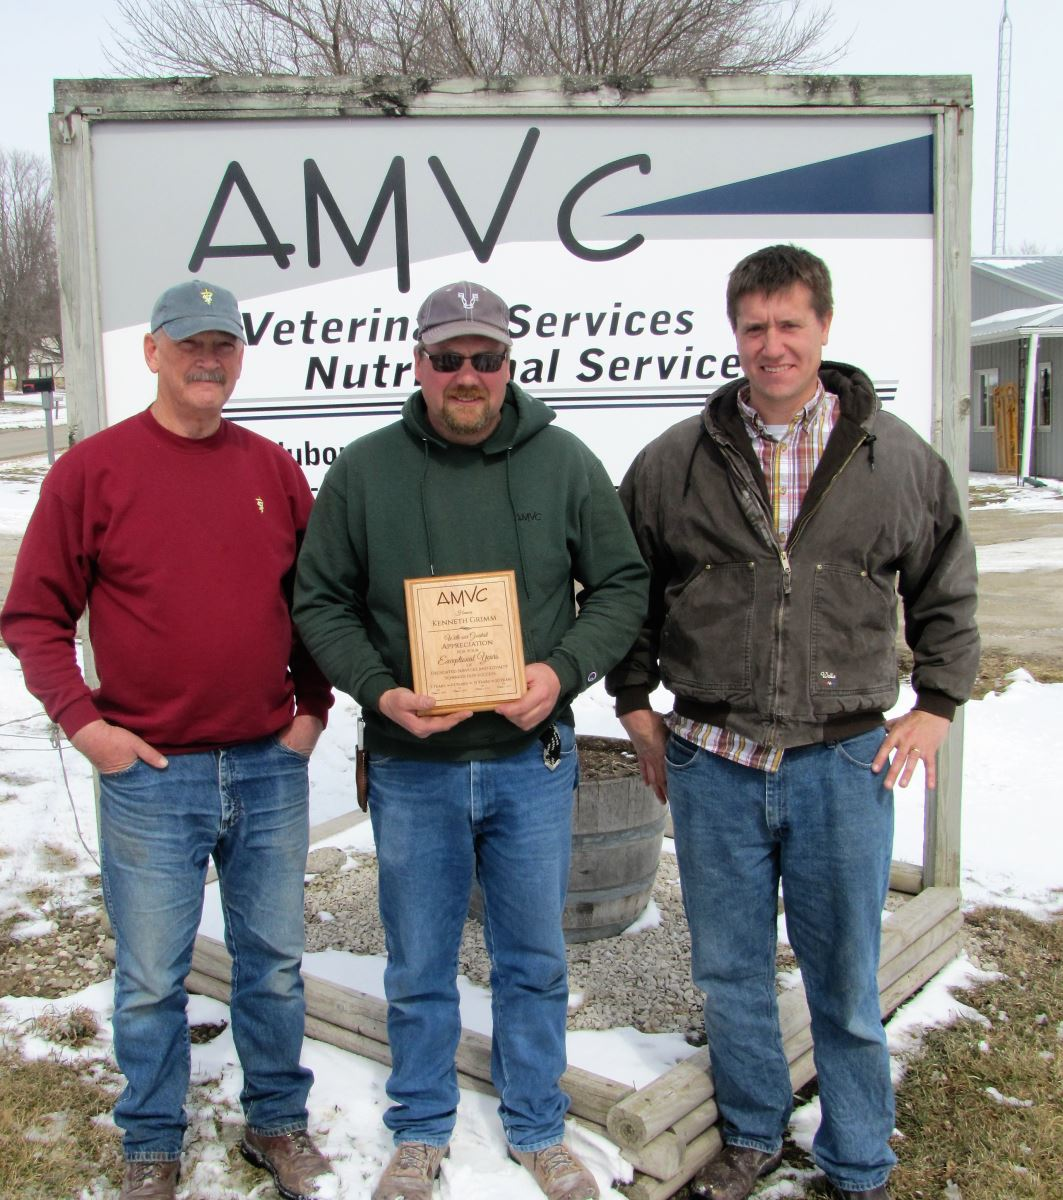 Grimm celebrates 20 years with AMVC